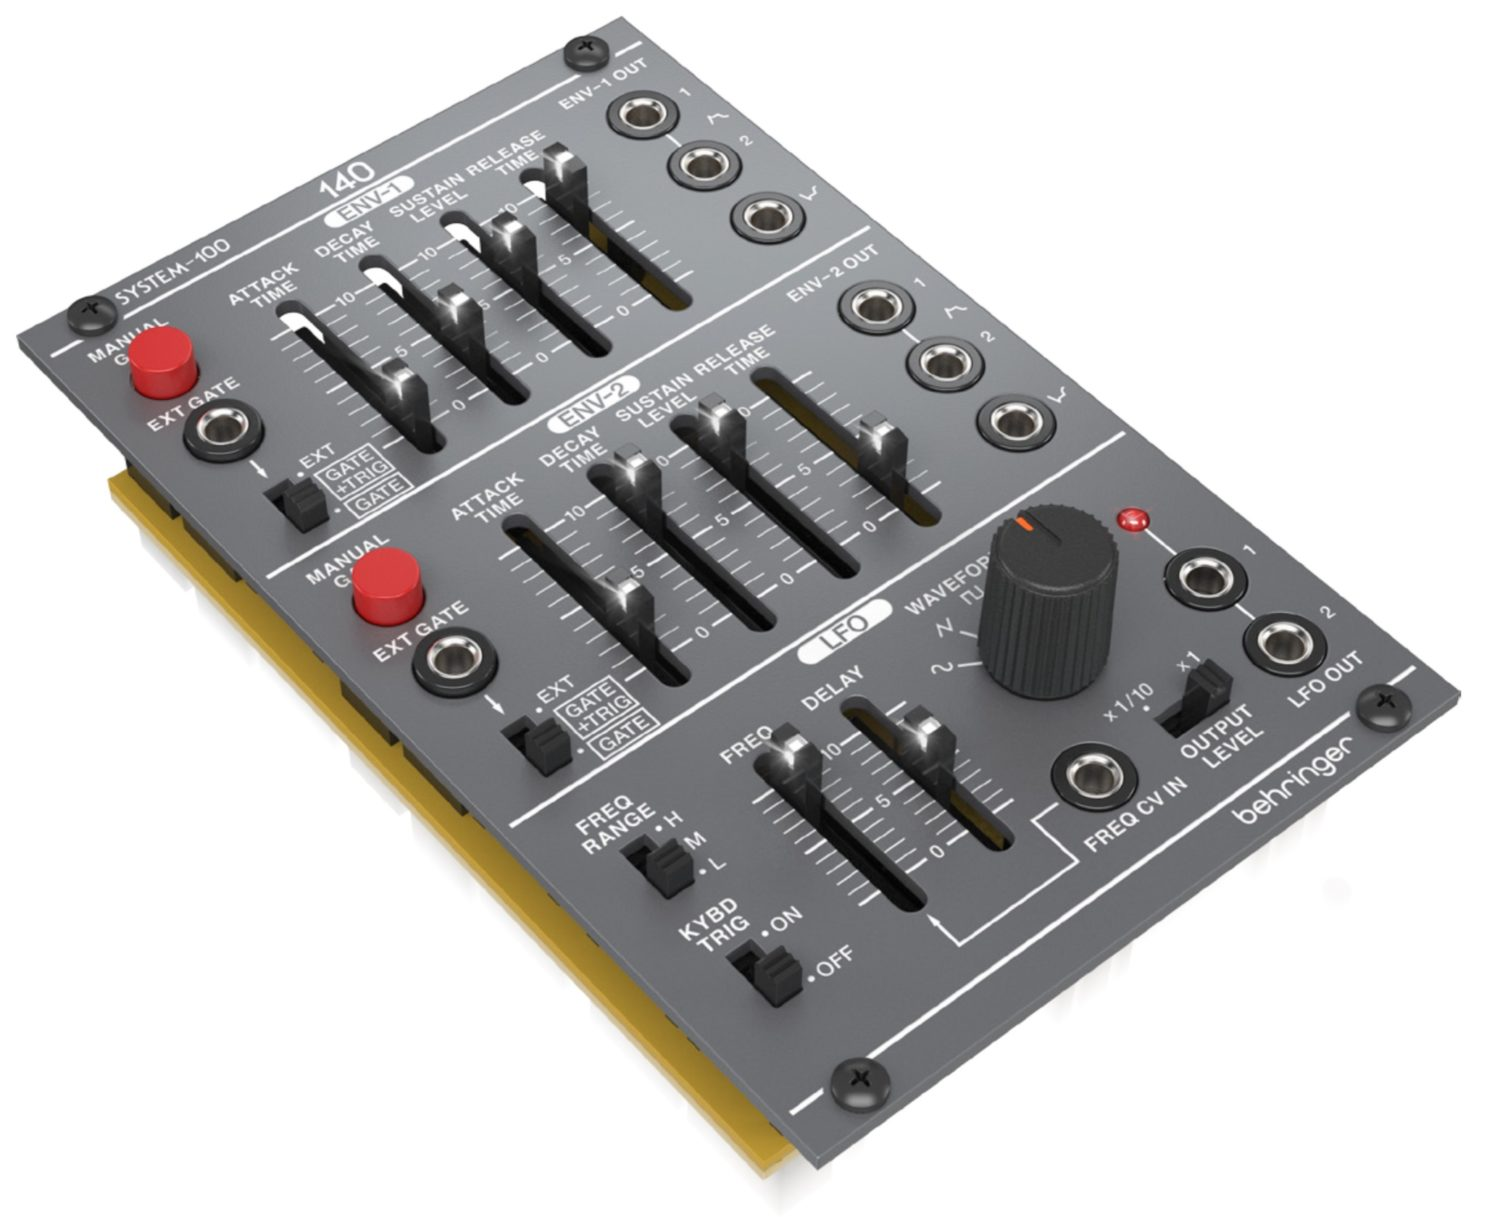 behringer shares plans for cloning roland system 100m modular synthesizer synthtopia. Black Bedroom Furniture Sets. Home Design Ideas